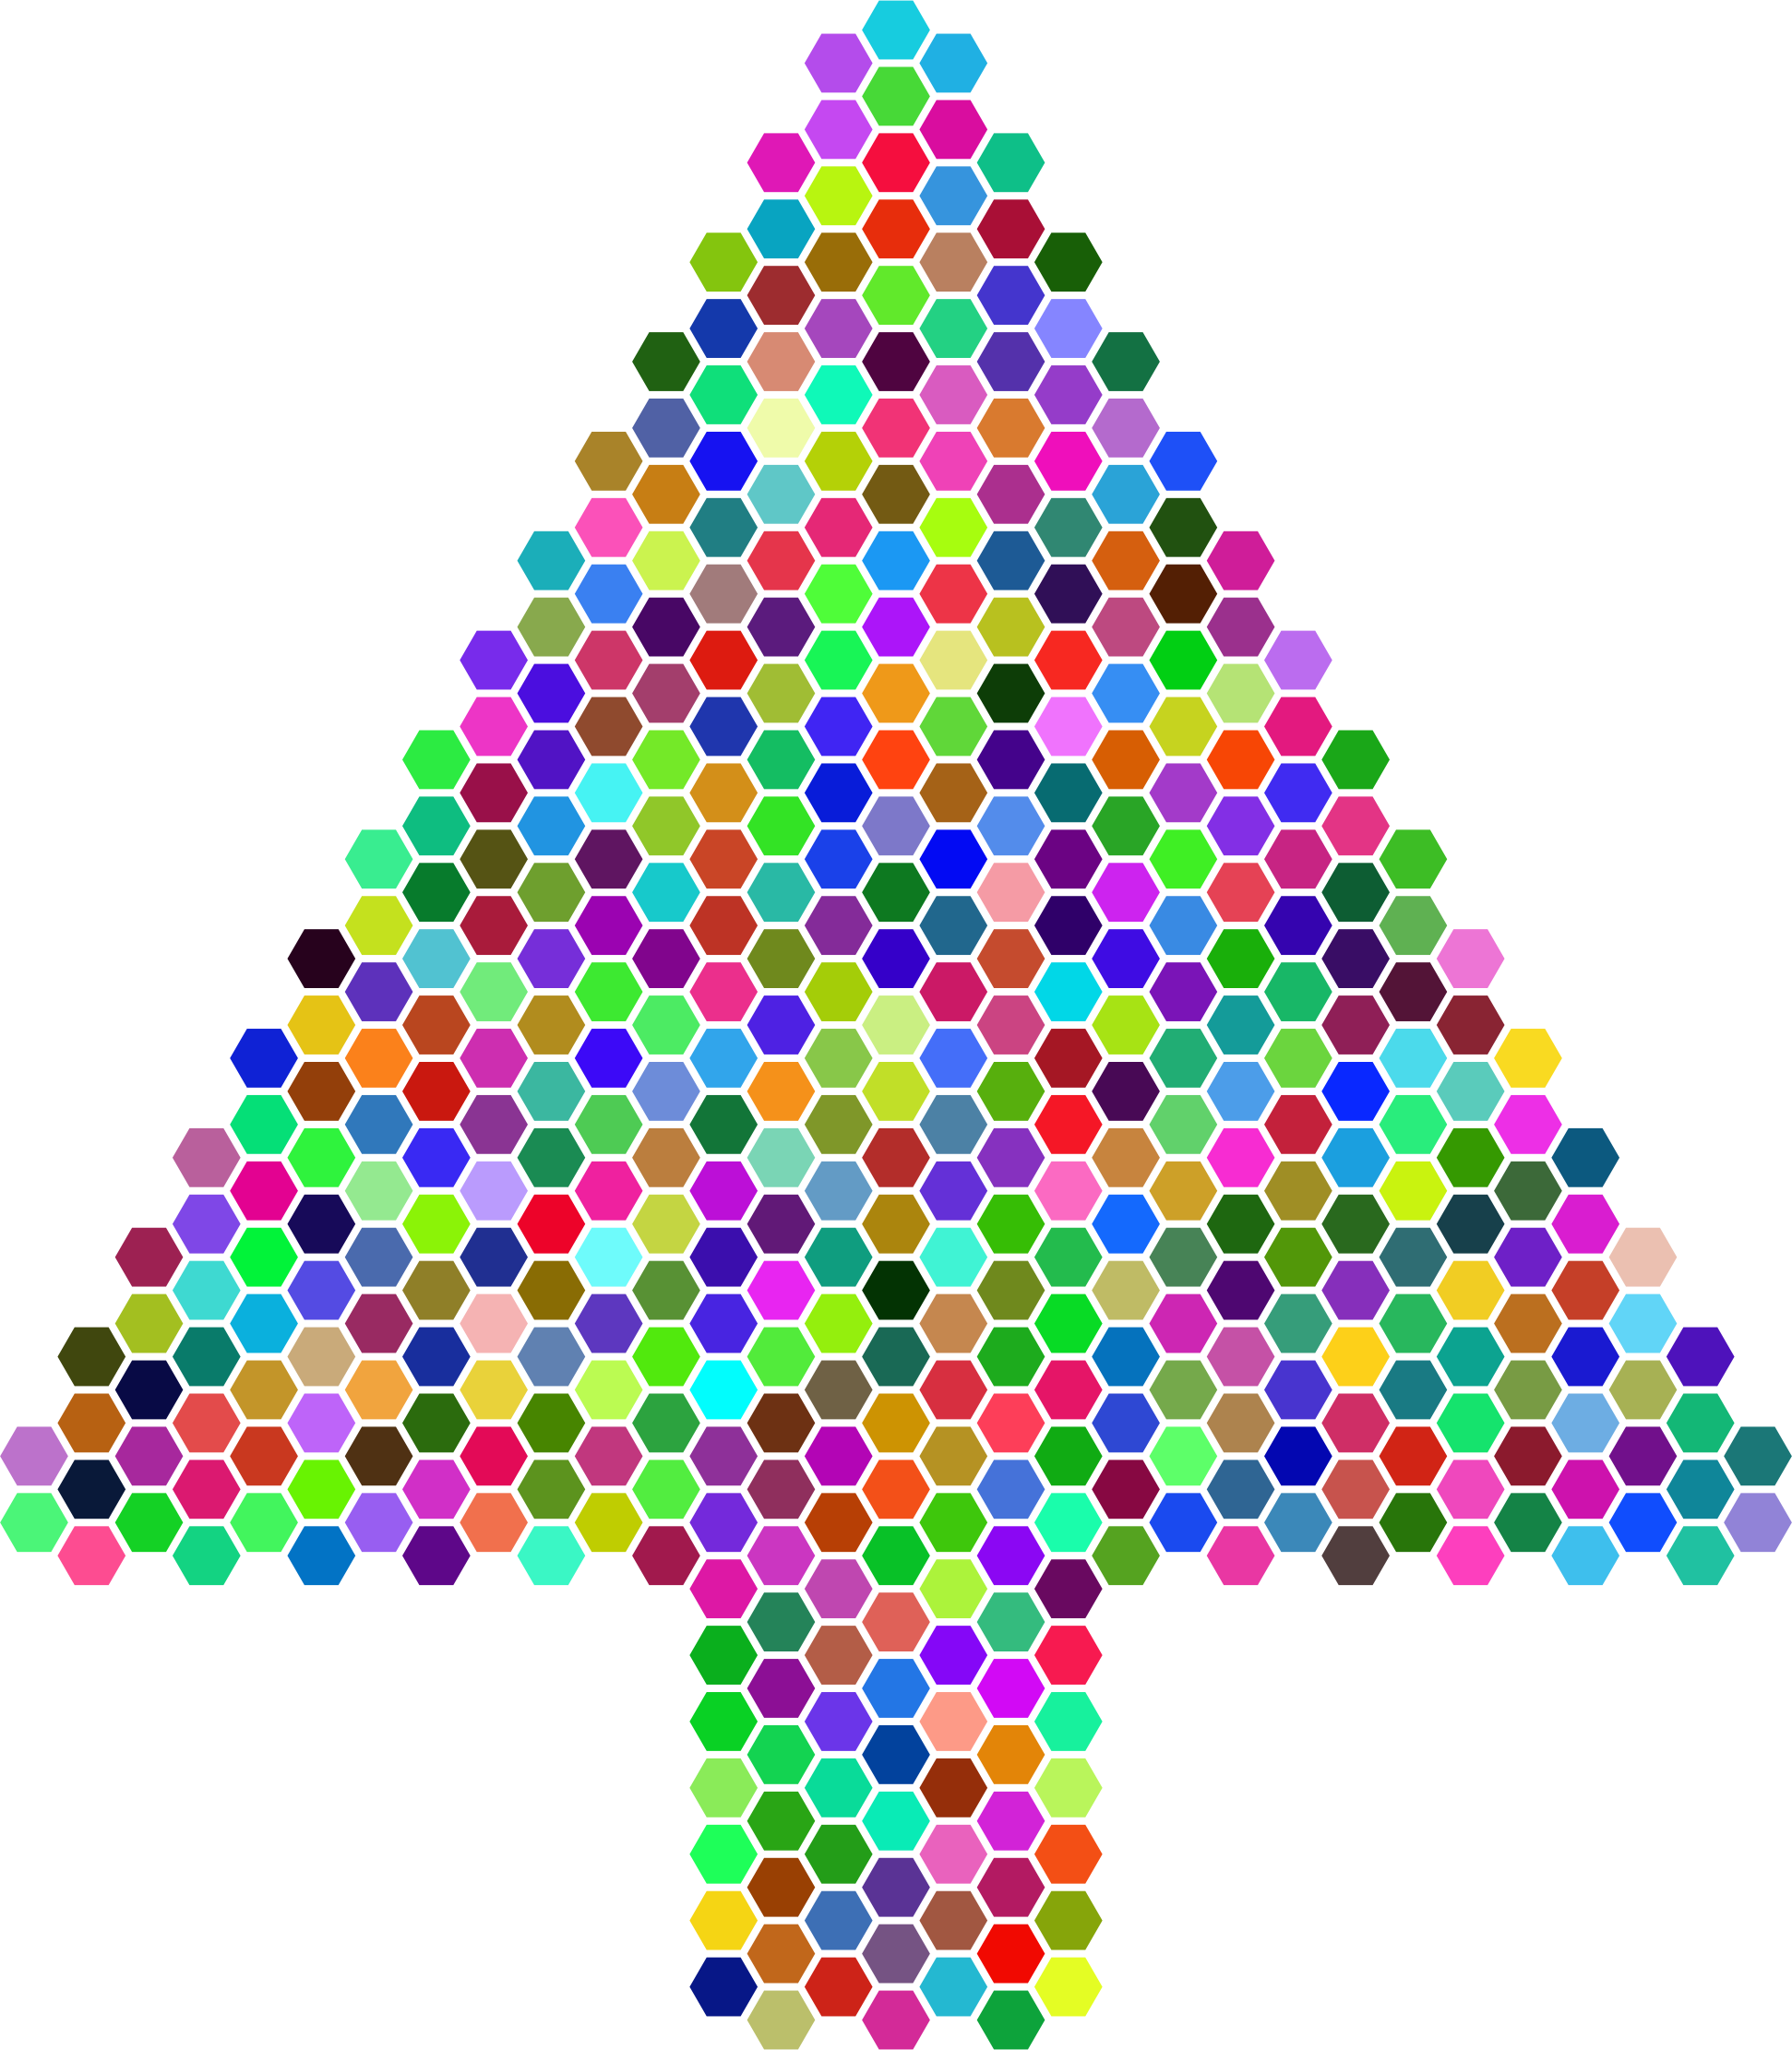 Prismatic Hexagonal Abstract Christmas Tree by GDJ